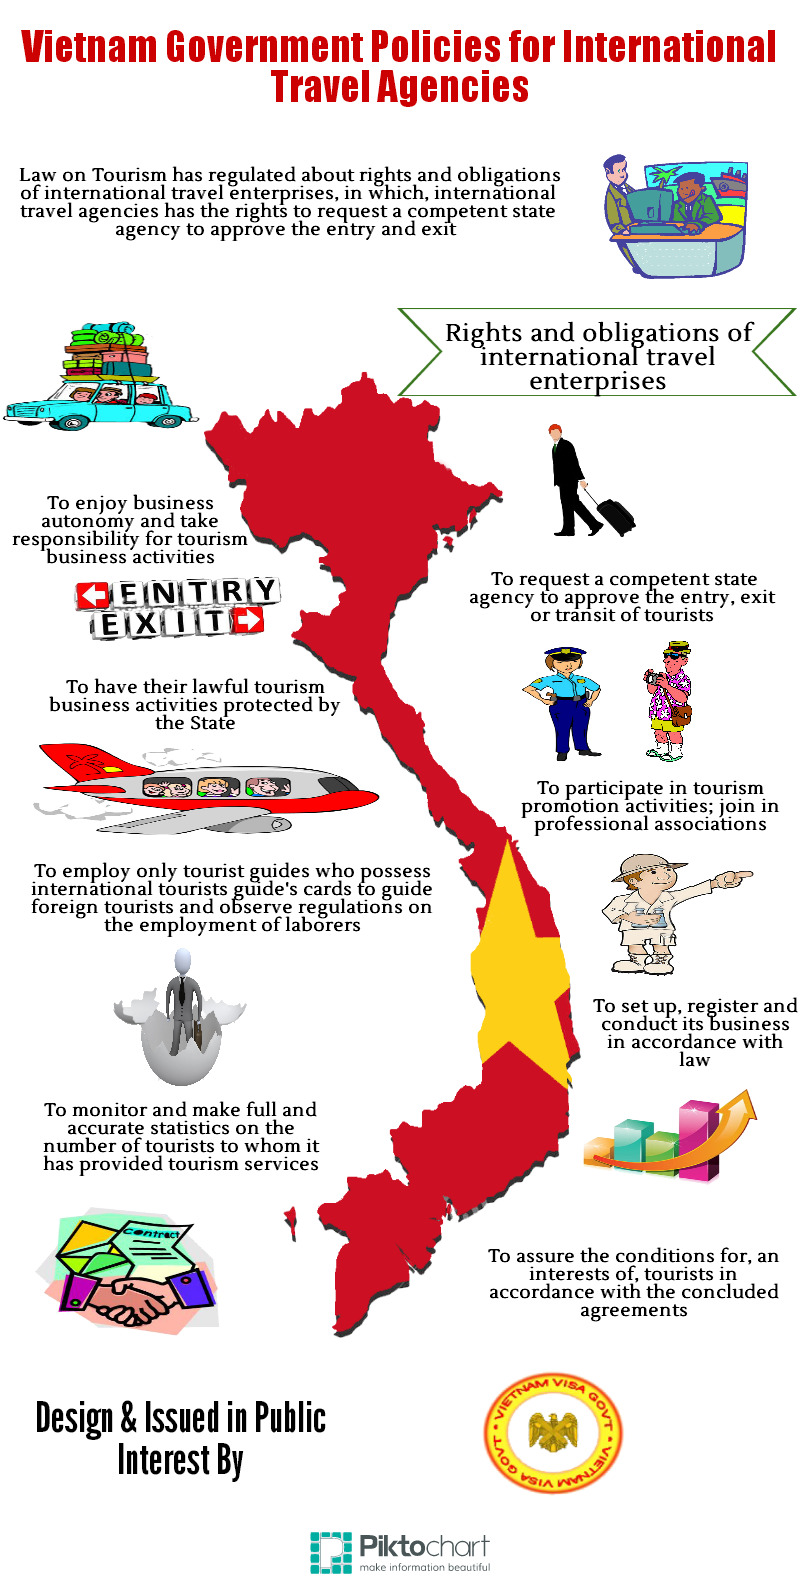 Vietnam government policies for visa on arrival | Visual.ly